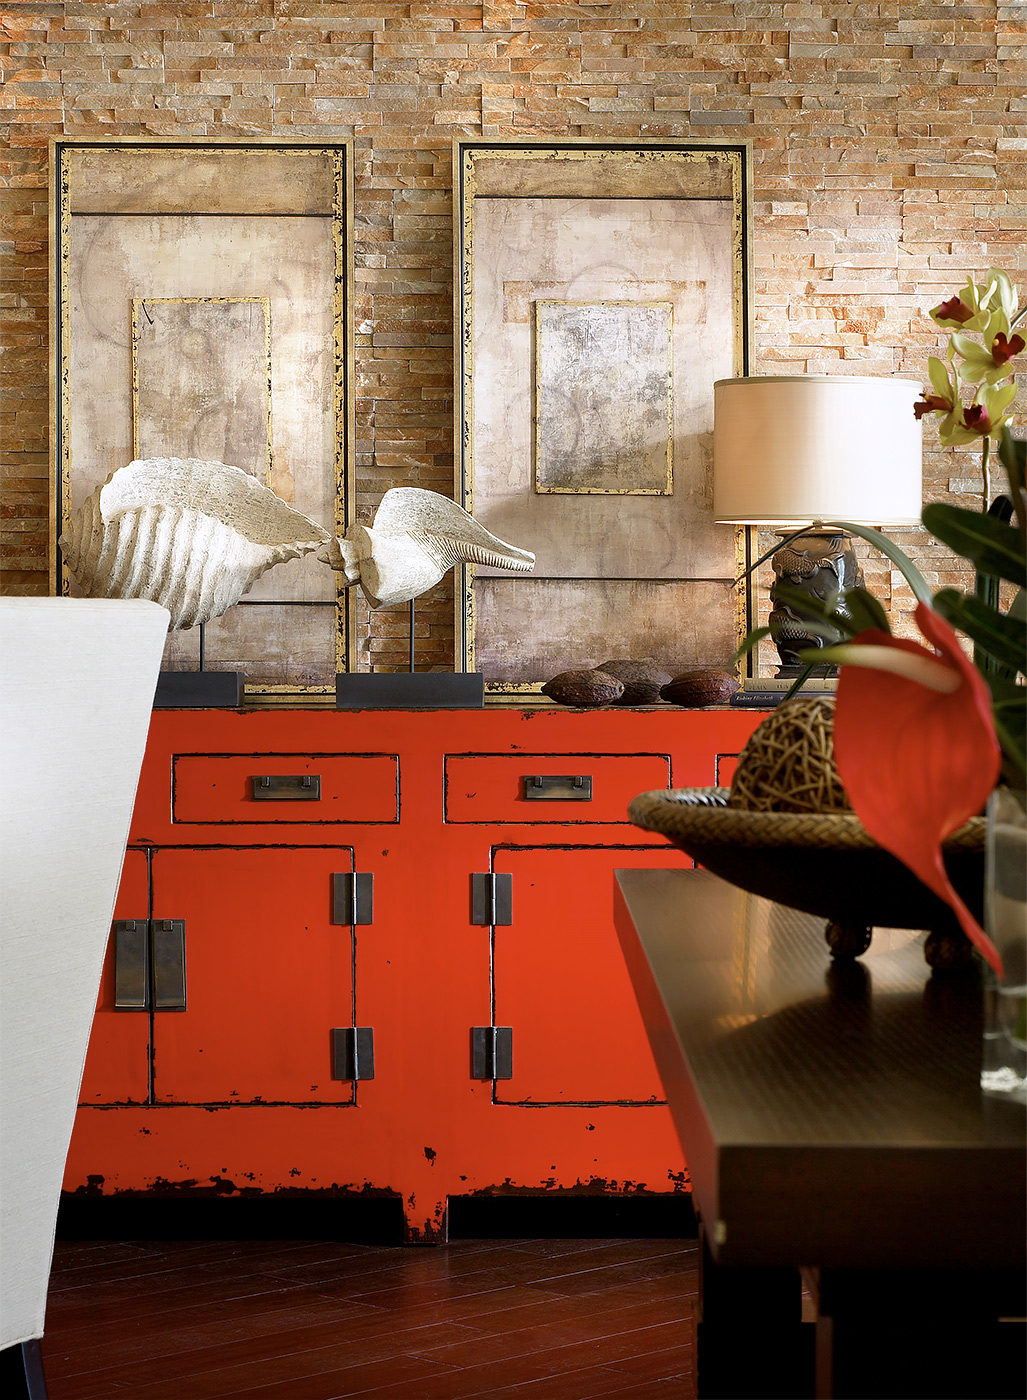 Robb-Stucky-Asian-Inspired-Design-Red-Dresser